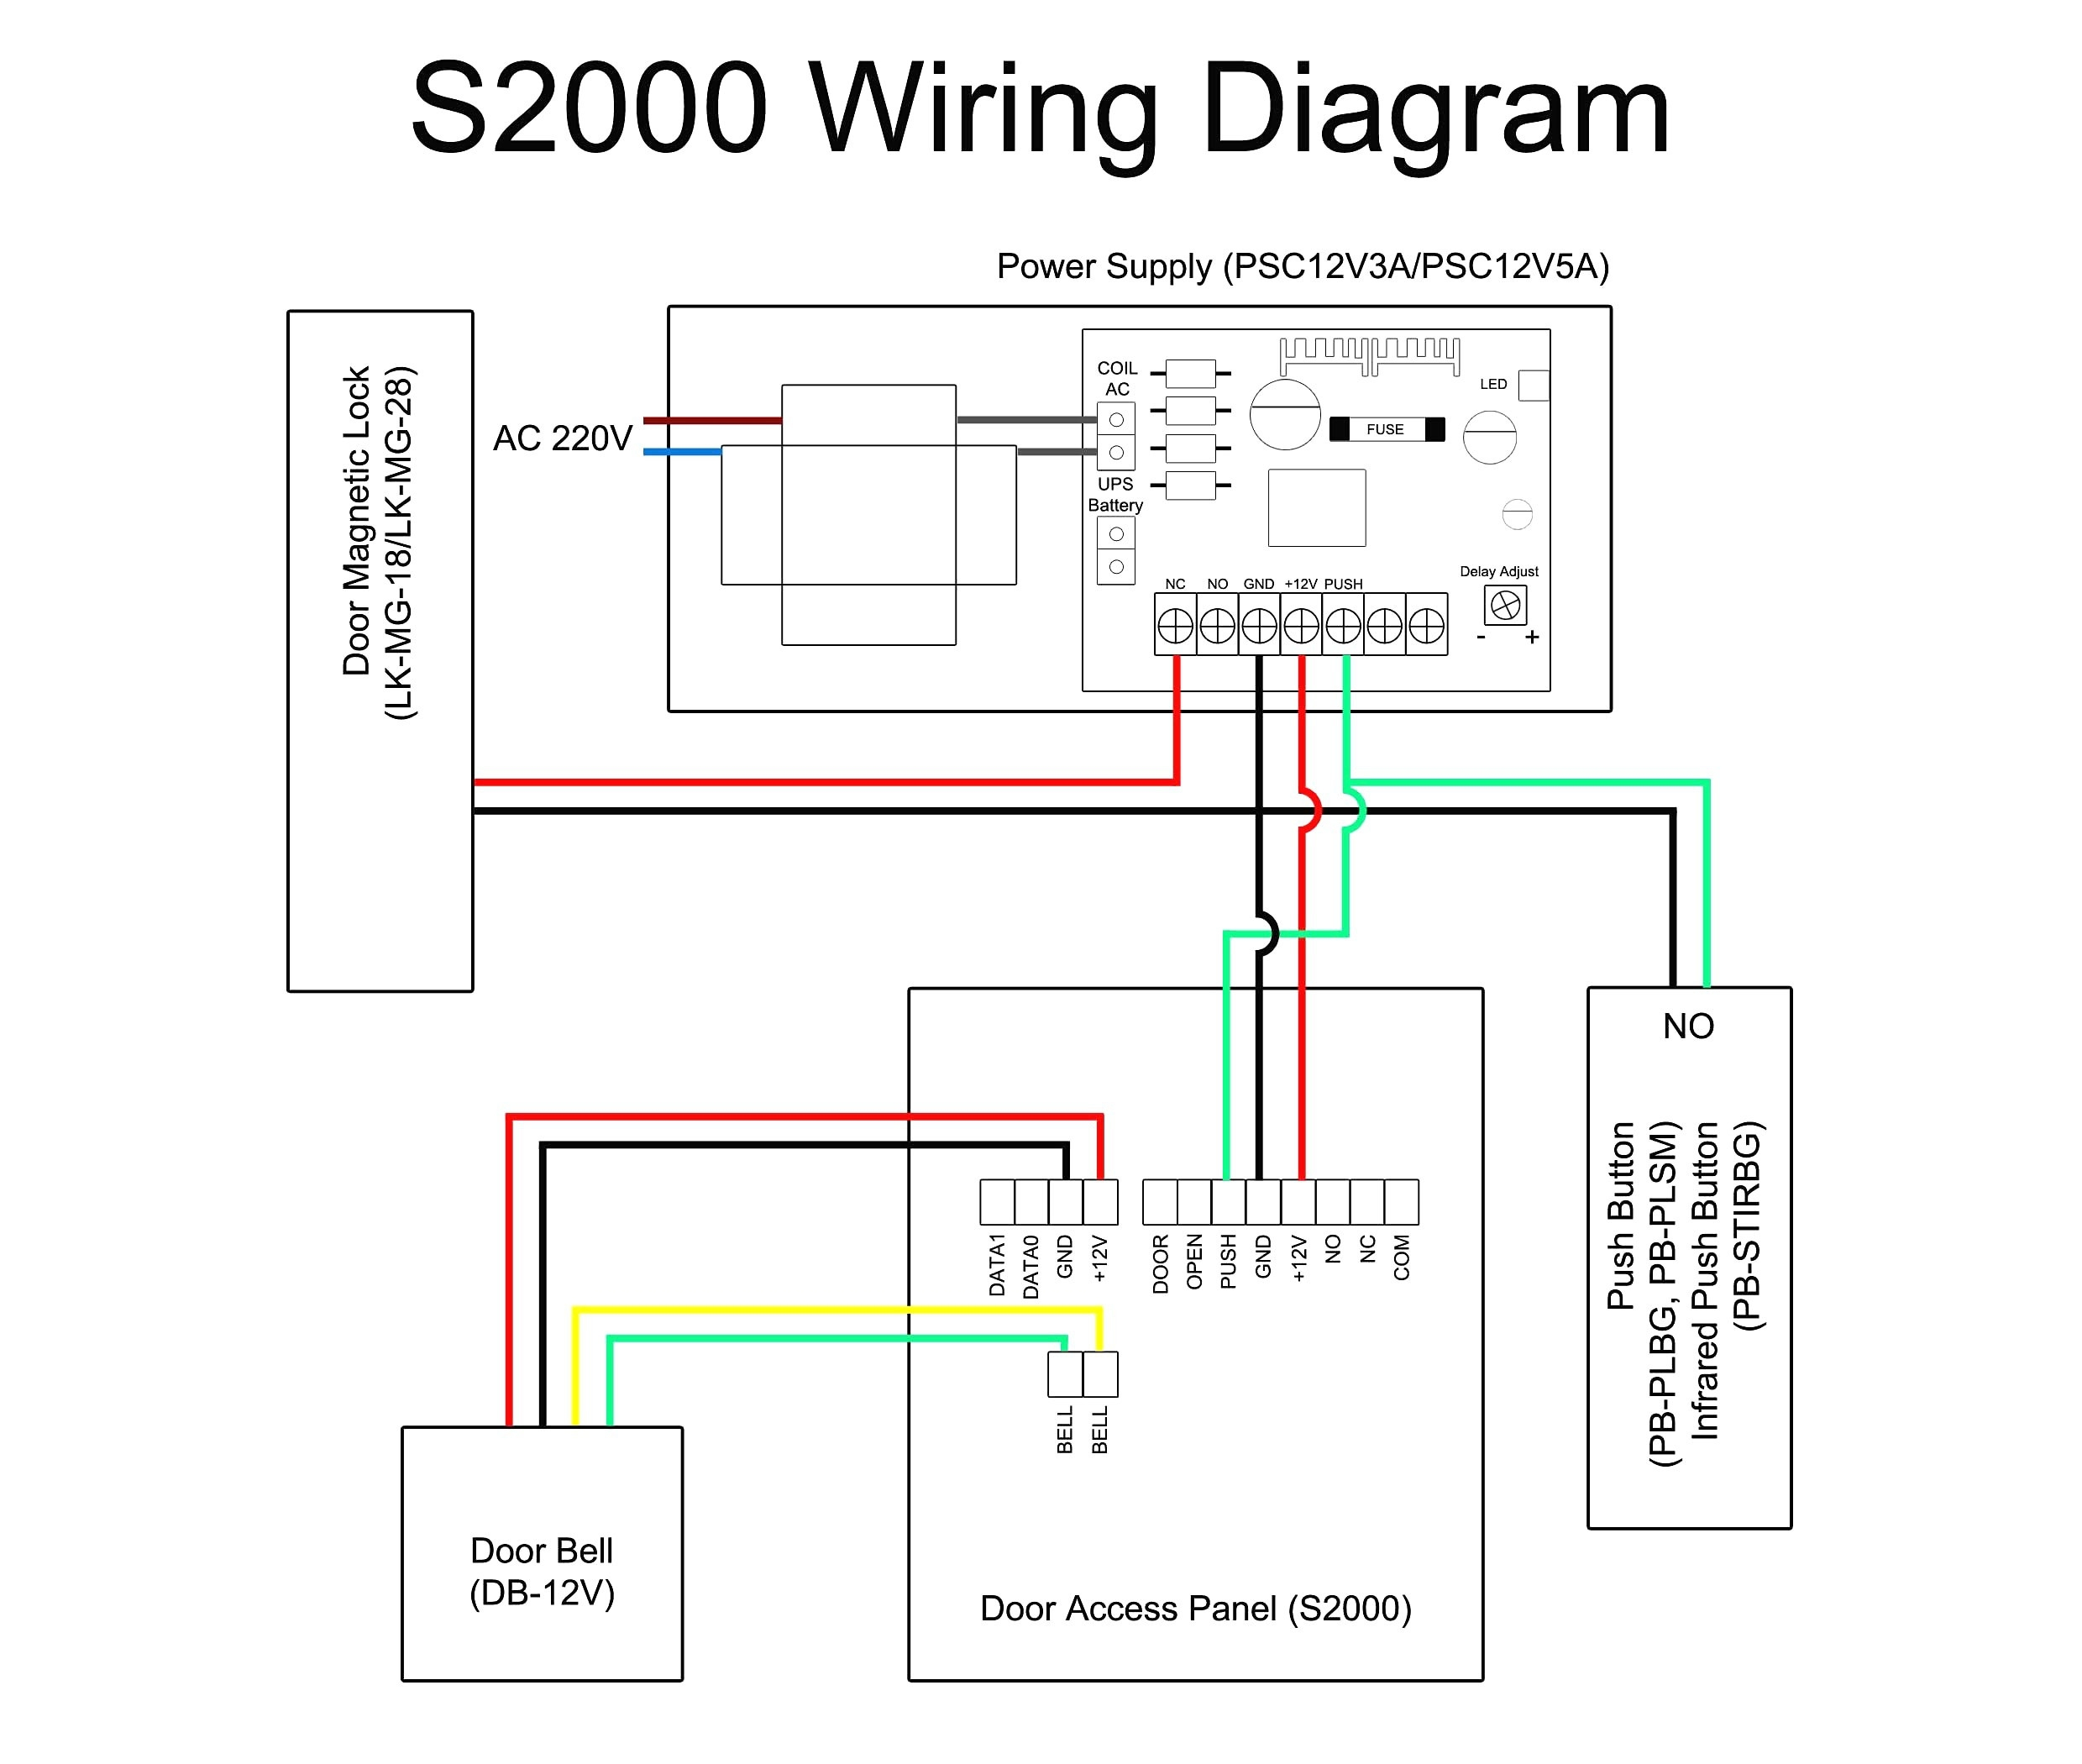 Usb To Rj11 Wiring Diagram | Manual E-Books - Rj11 To Usb Wiring Diagram